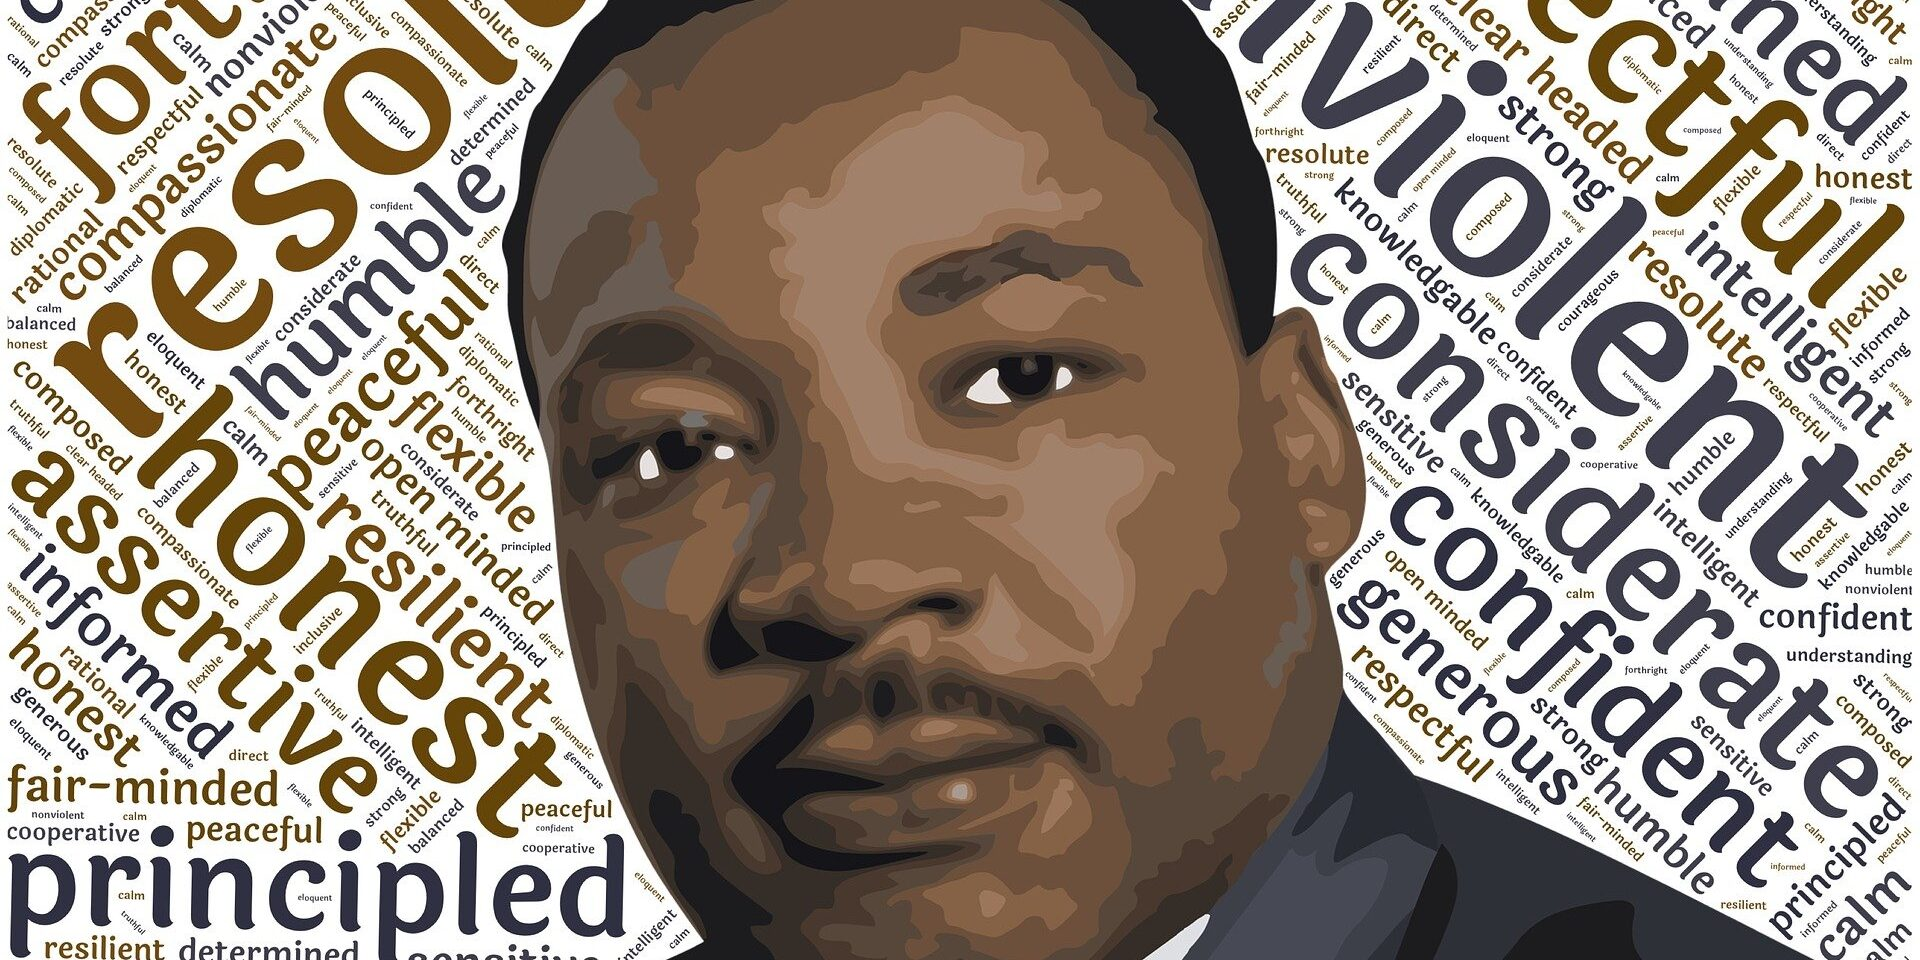 Martin Luther King, Jr artistic likeness and word art